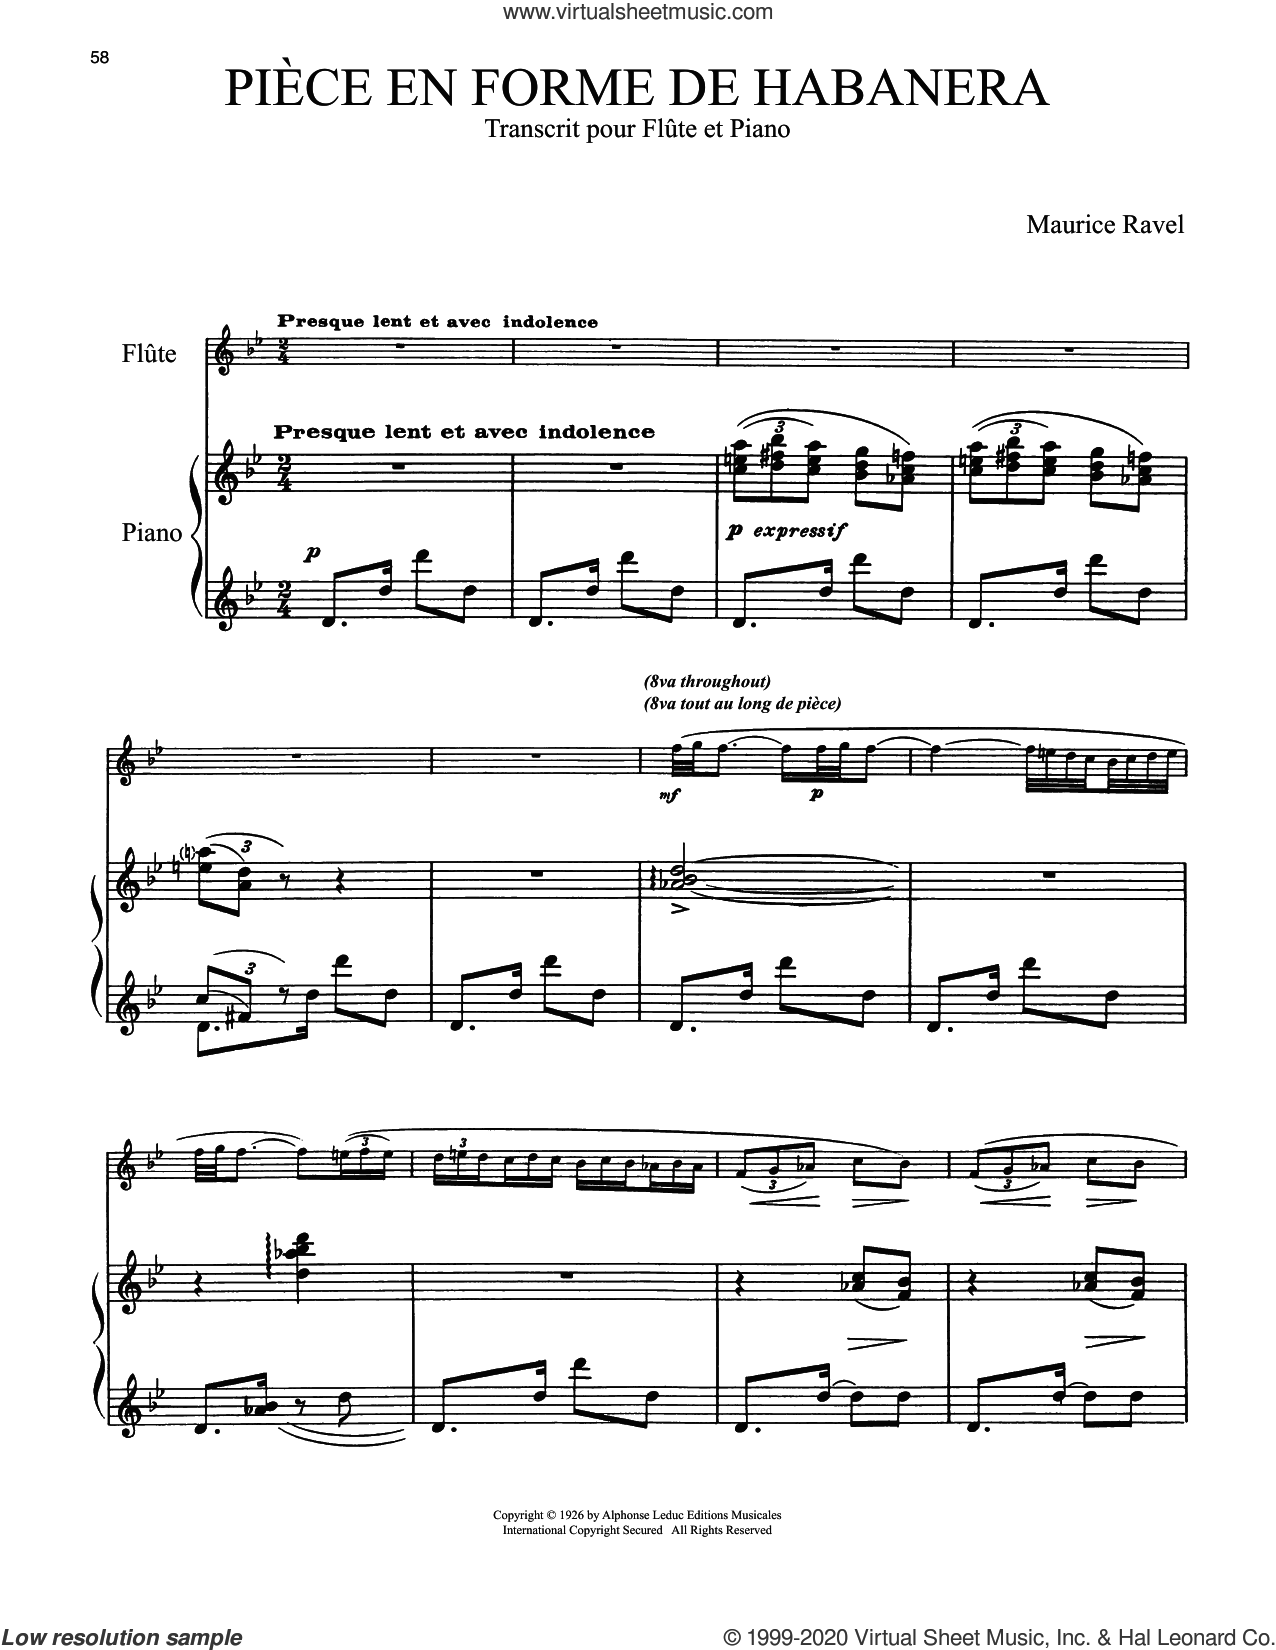 Piece En Forme De Habanera sheet music for flute and piano by Maurice Ravel, classical score, intermediate skill level